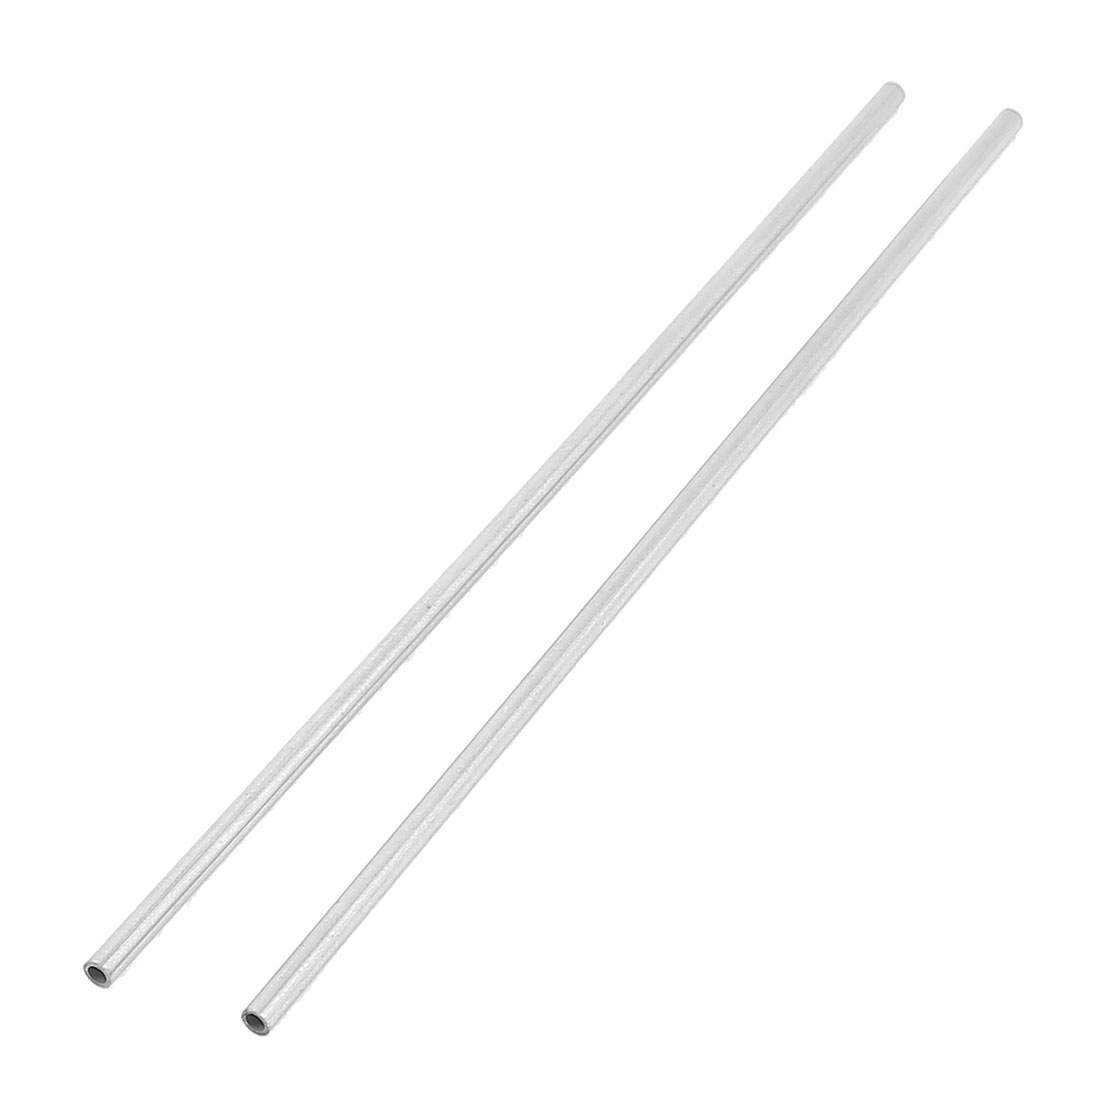 Round Stainless Steel Rod Bar Shaft Silver Tone 3x150mm 2pcs